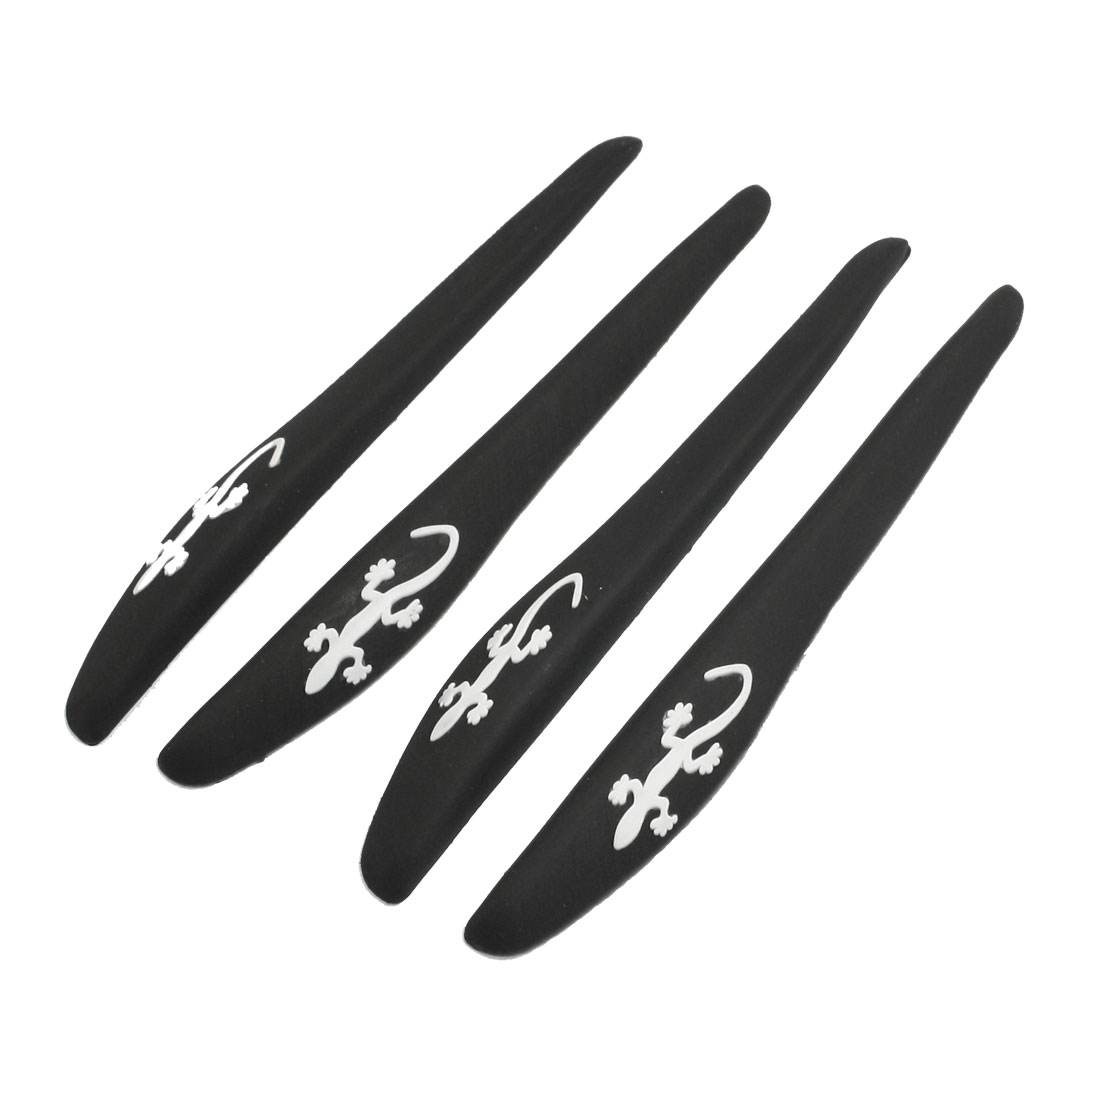 4 Pcs Black White Gecko Decors Car Door Bumper Guard Sticker